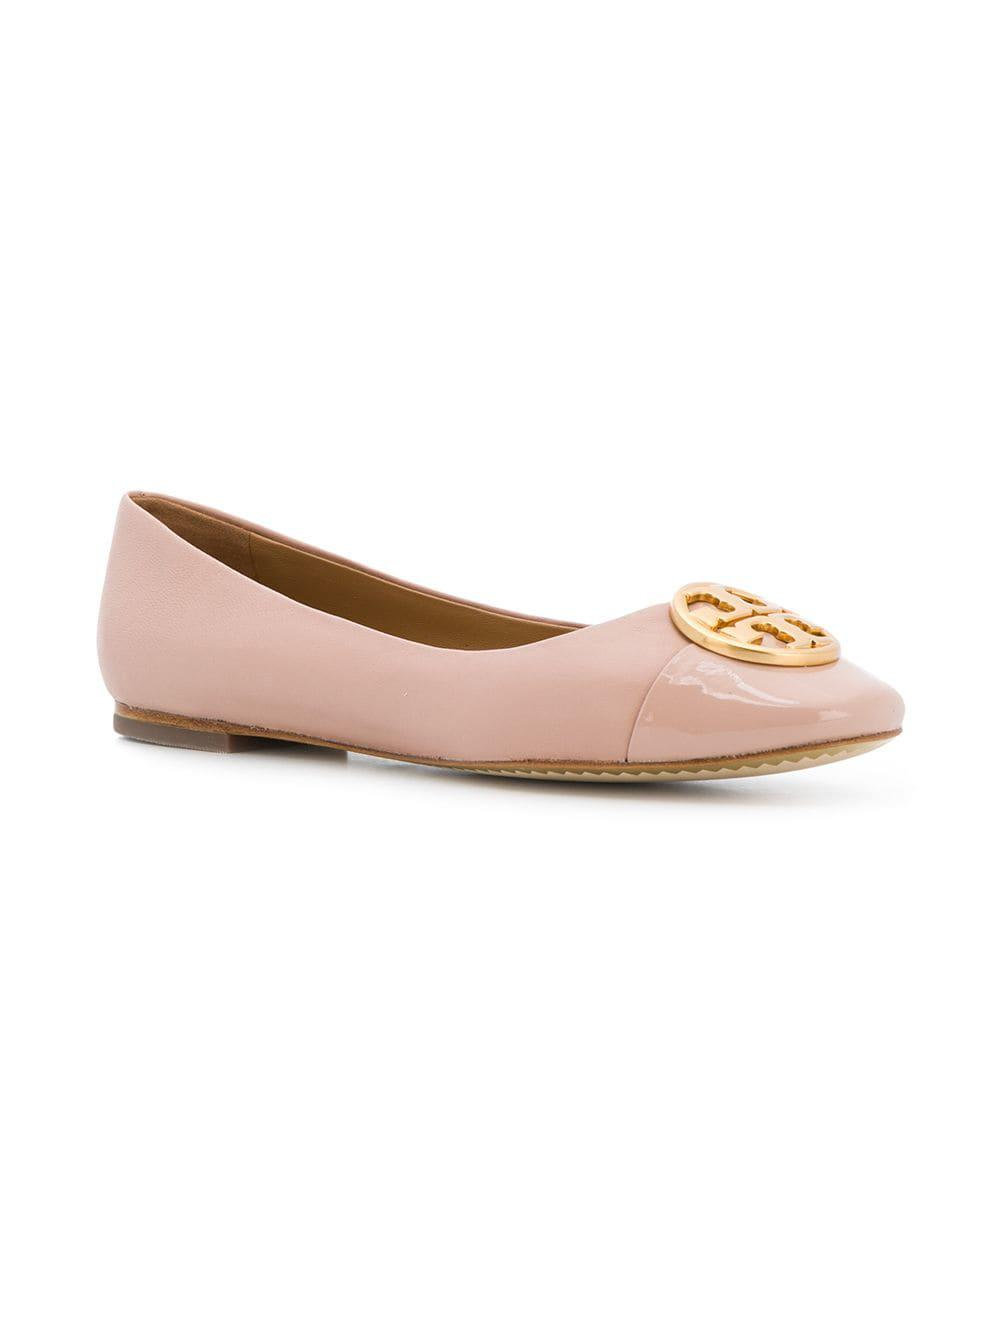 2fce650709e Tory Burch Chelsea Cap Toe Ballet Flats in Pink - Save 4.296875% - Lyst